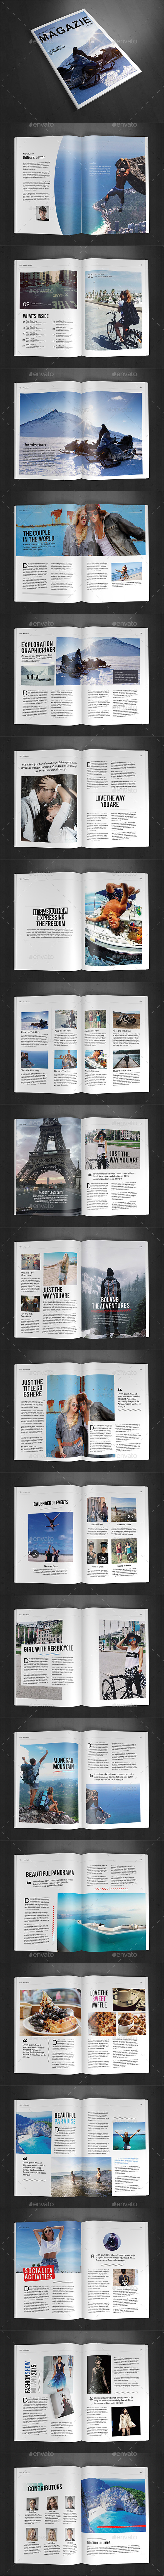 A4 Magazine Template Vol. 16 - Magazines Print Templates